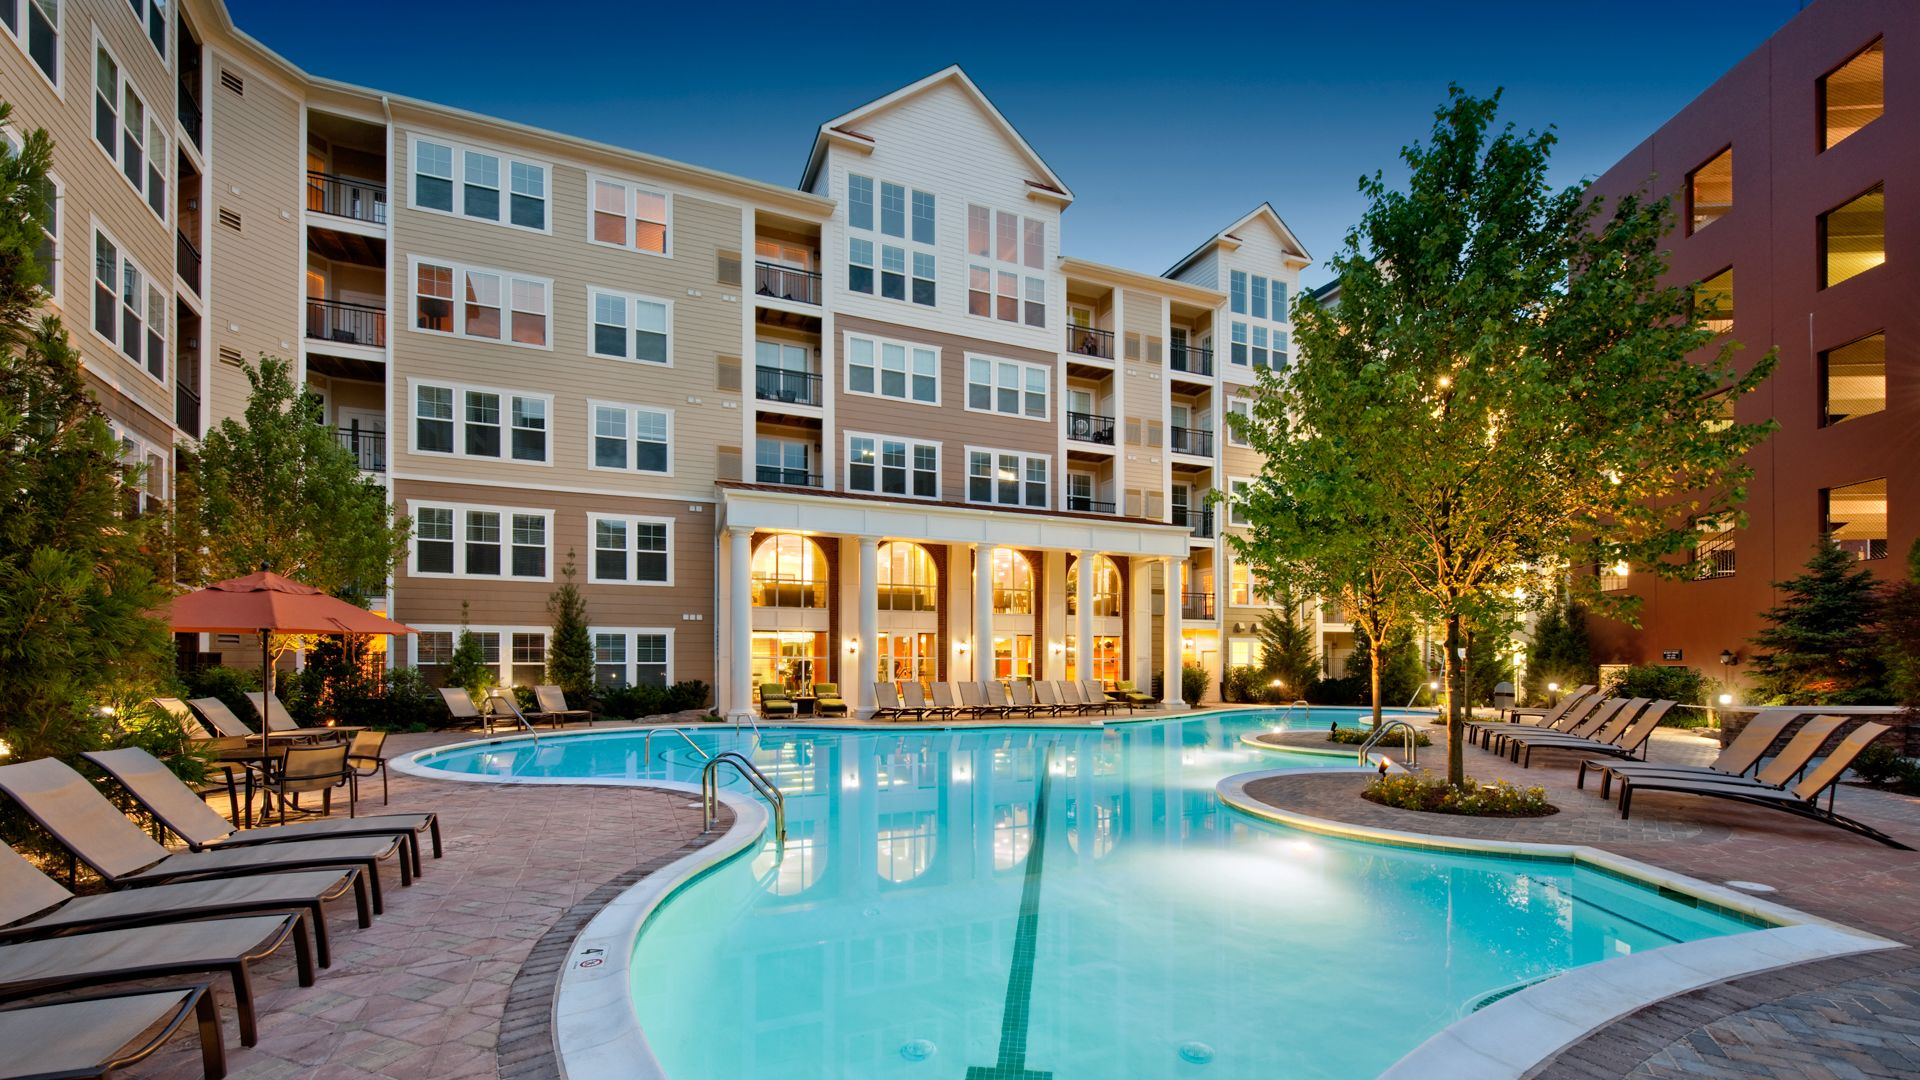 Westchester Rockville Station Apartments - Swimming Pool